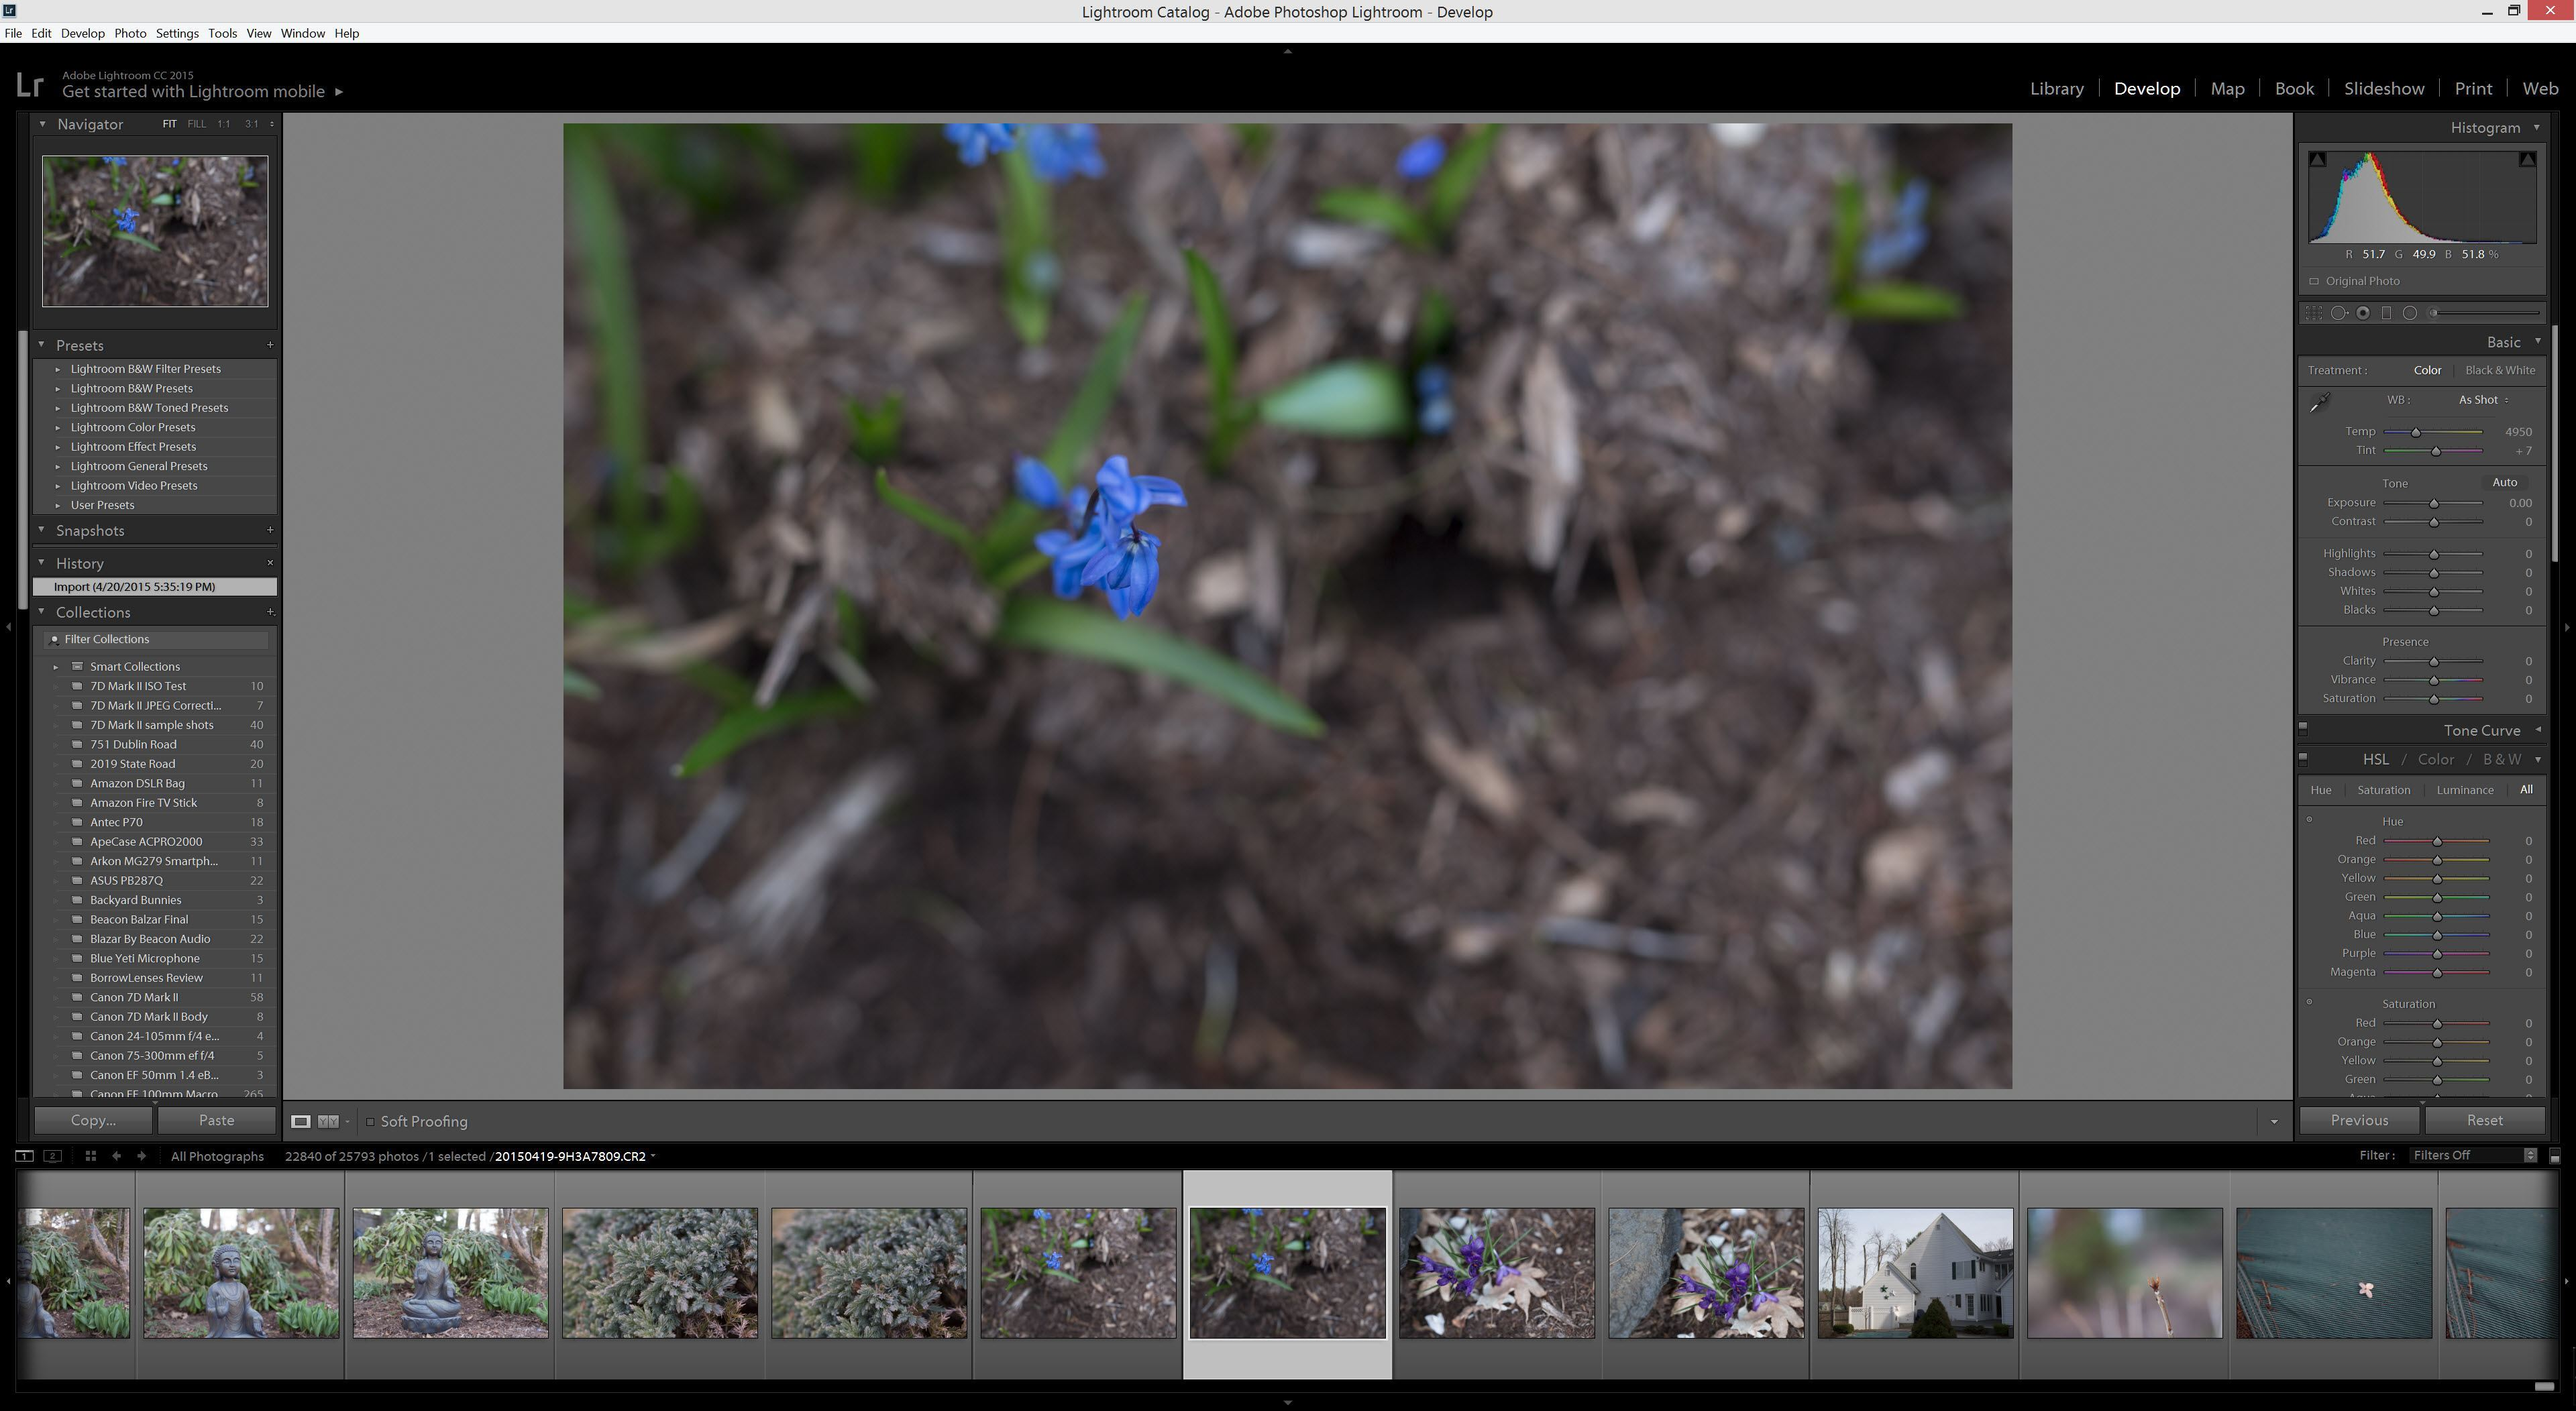 Lightroom 6 Develop Tab